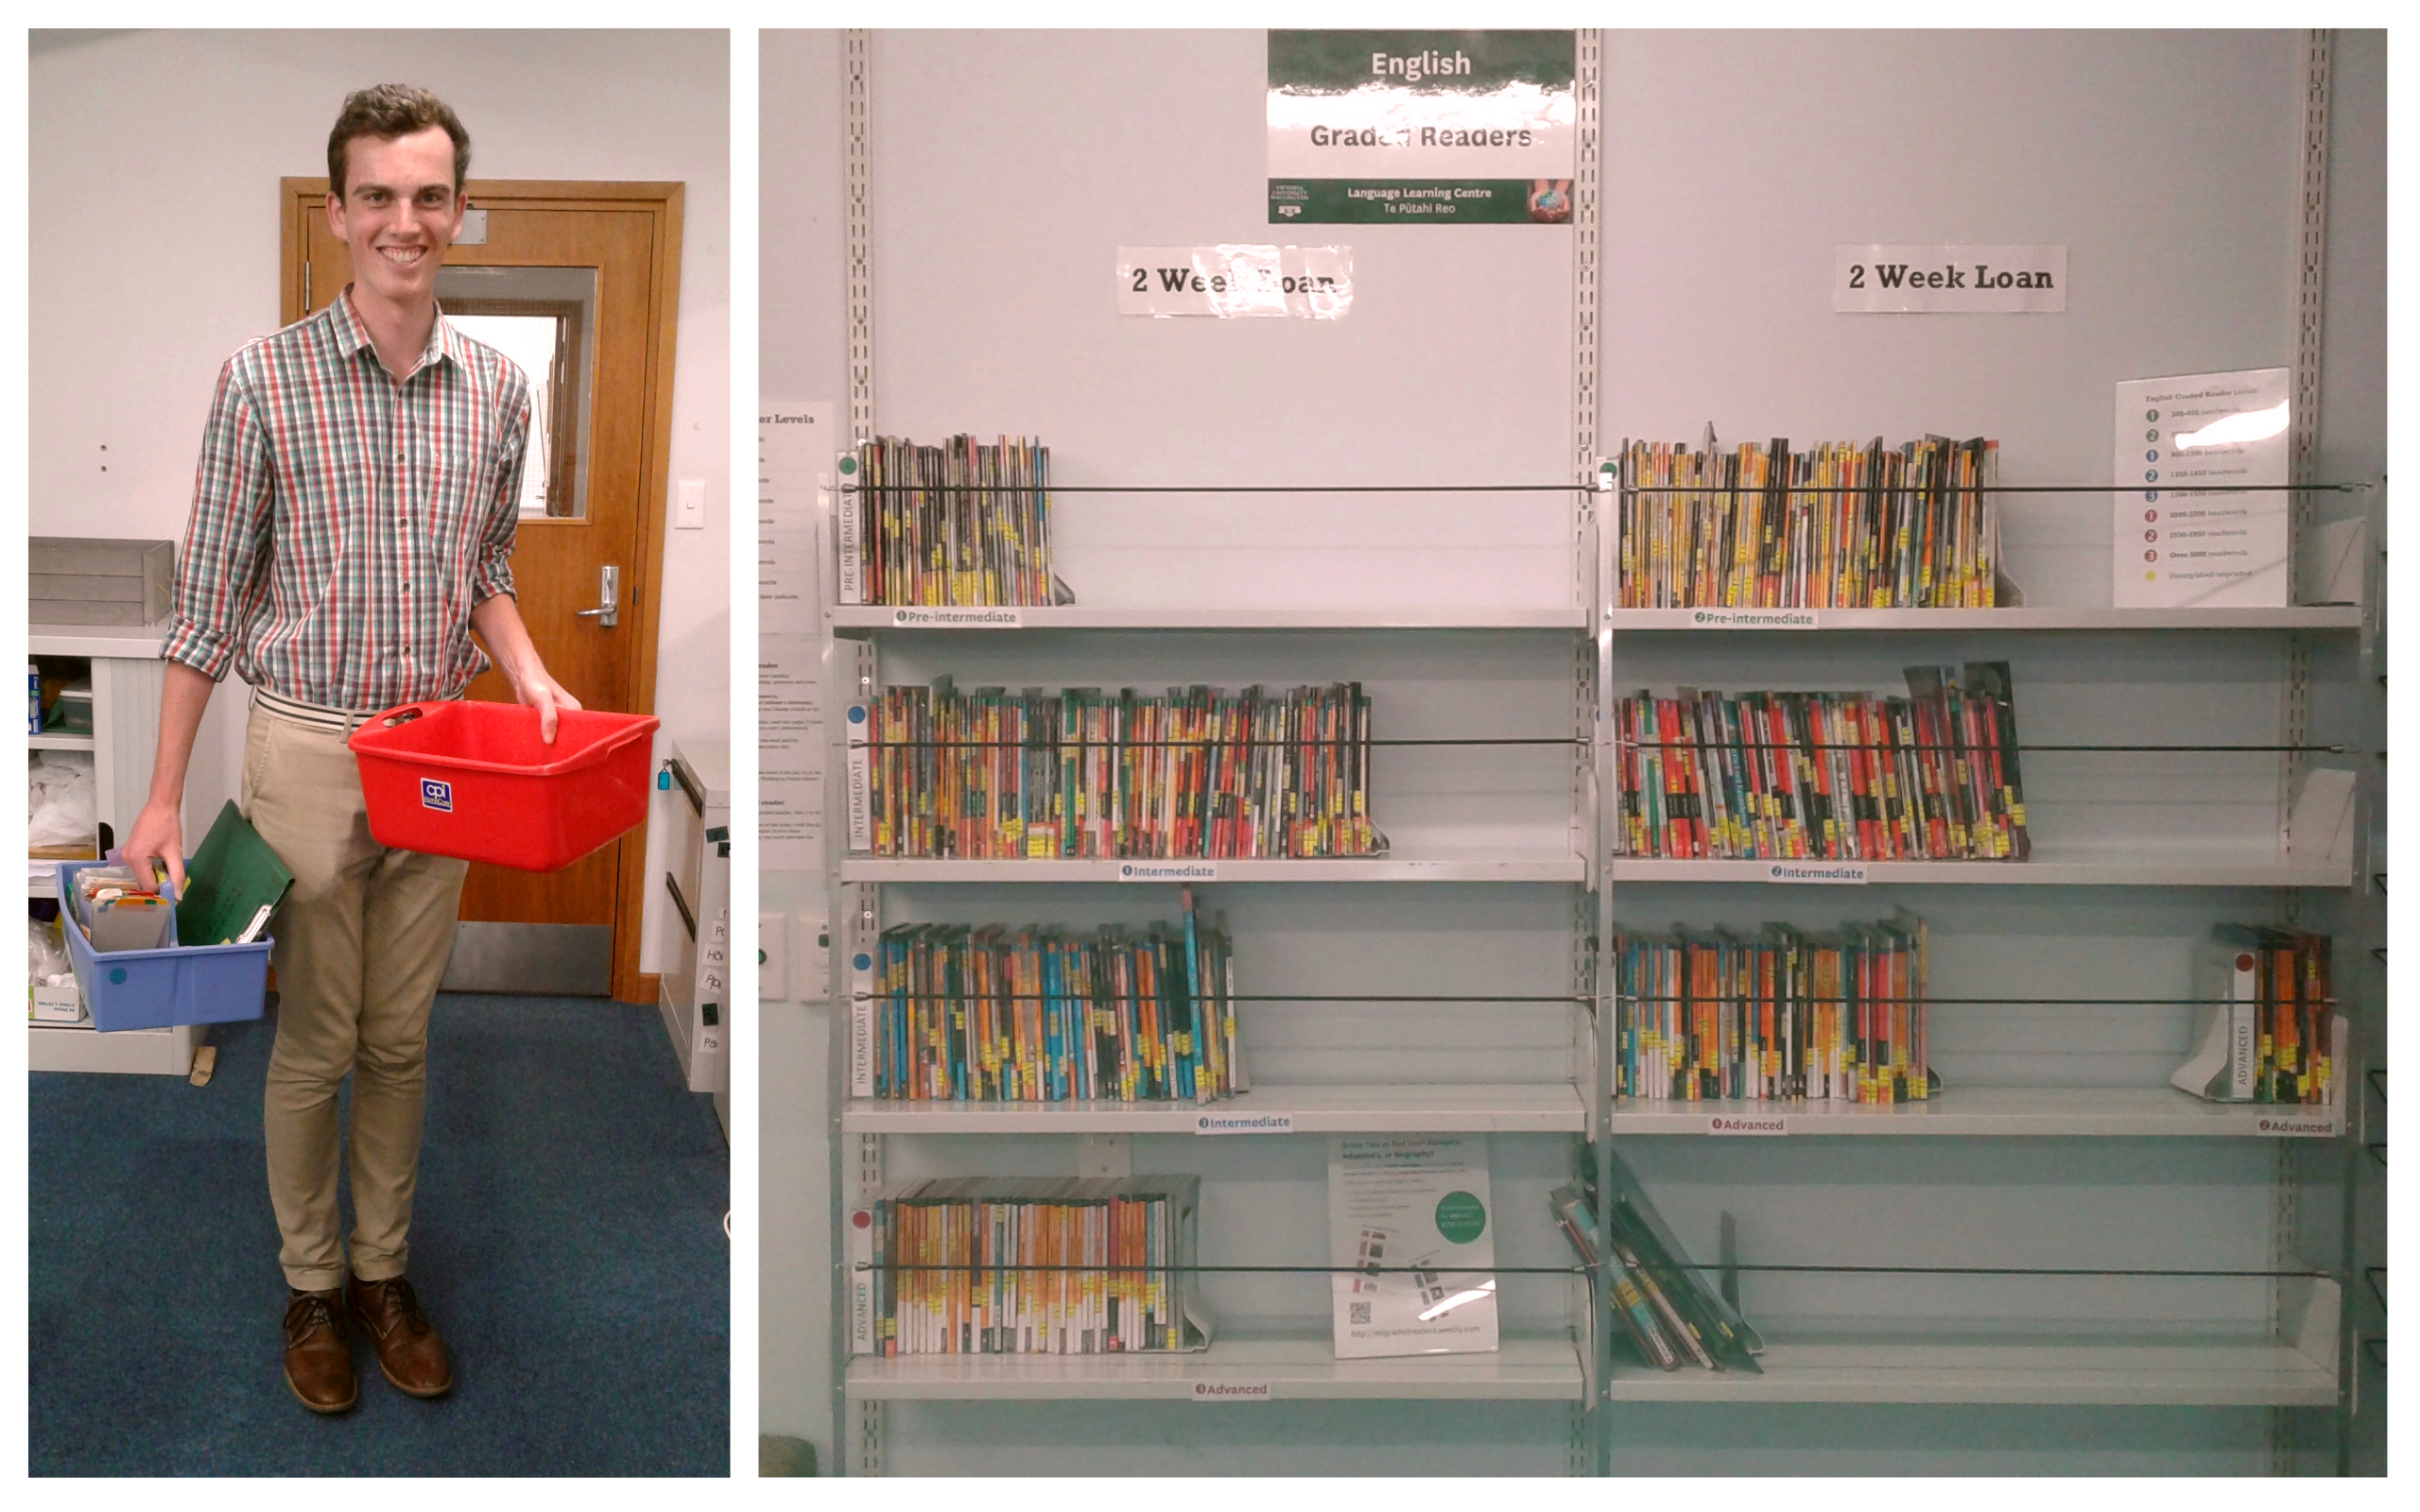 Left: Alastair Baldwin (LALS) with the baskets where carded graded readers used to be returned. Right: the combined LLC/ELI graded reader collection in its old/new location.